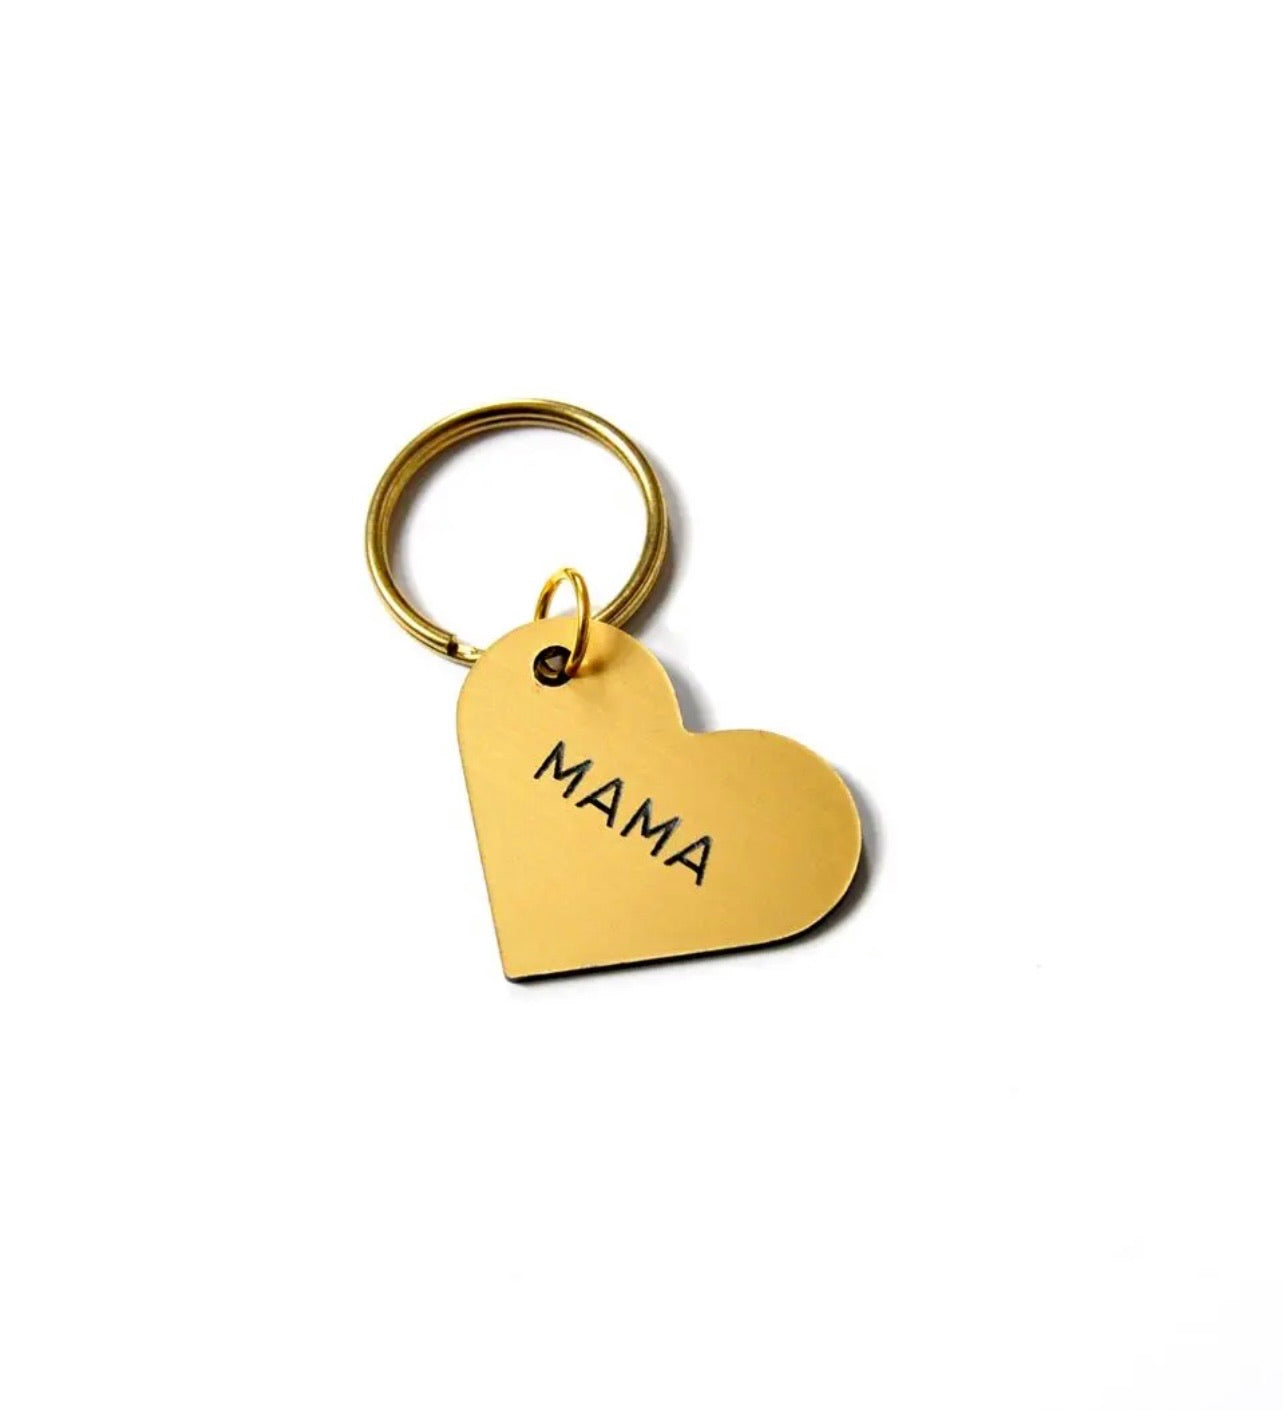 Mama Heart Key Tag